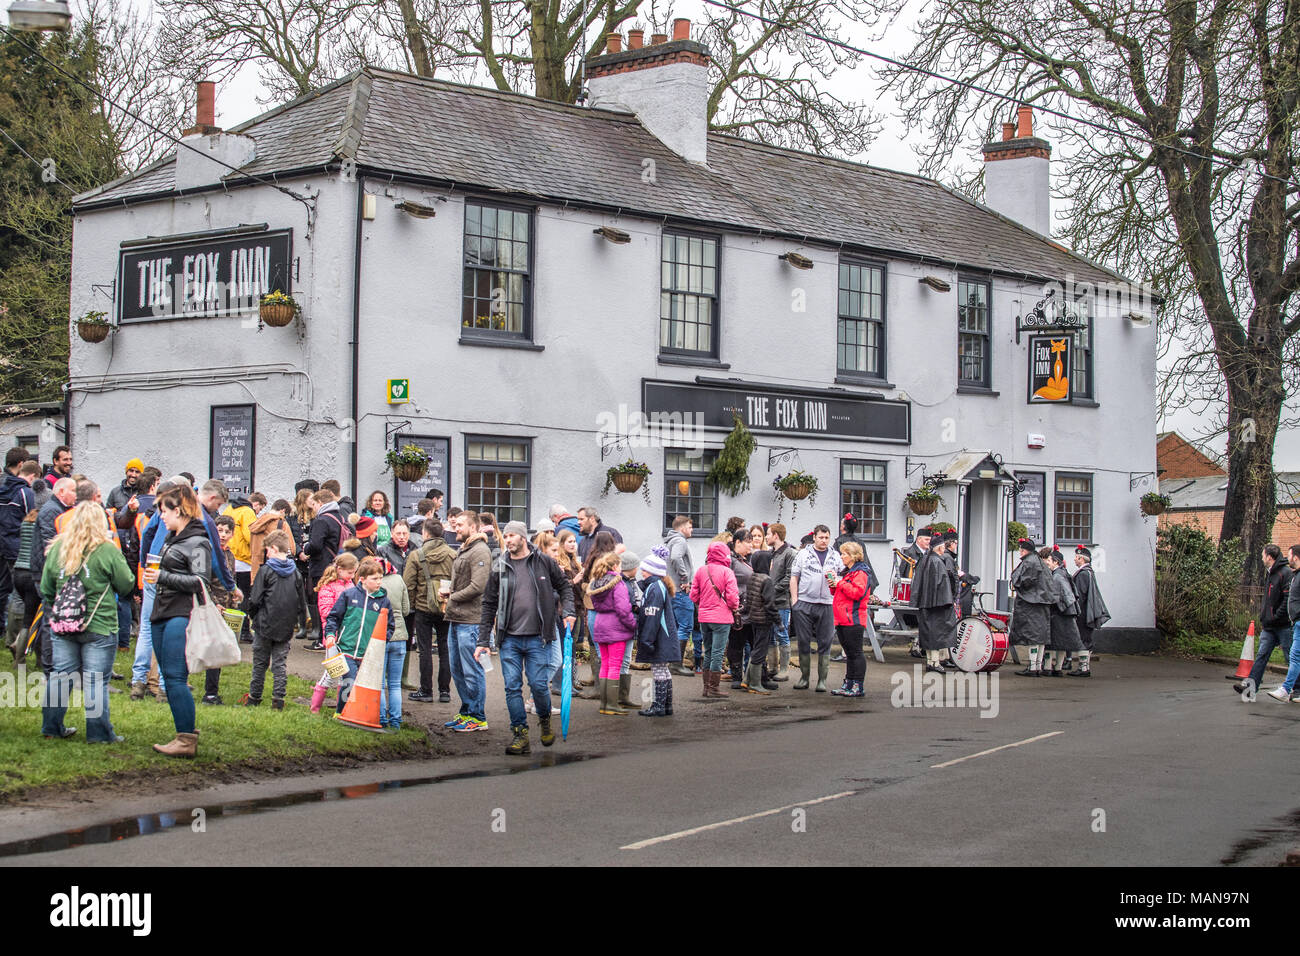 Villagers gather at the Fox inn before the hare pie parade to the local church of St Michael and All Angels for the pie to be blessed by the vicar bef - Stock Image